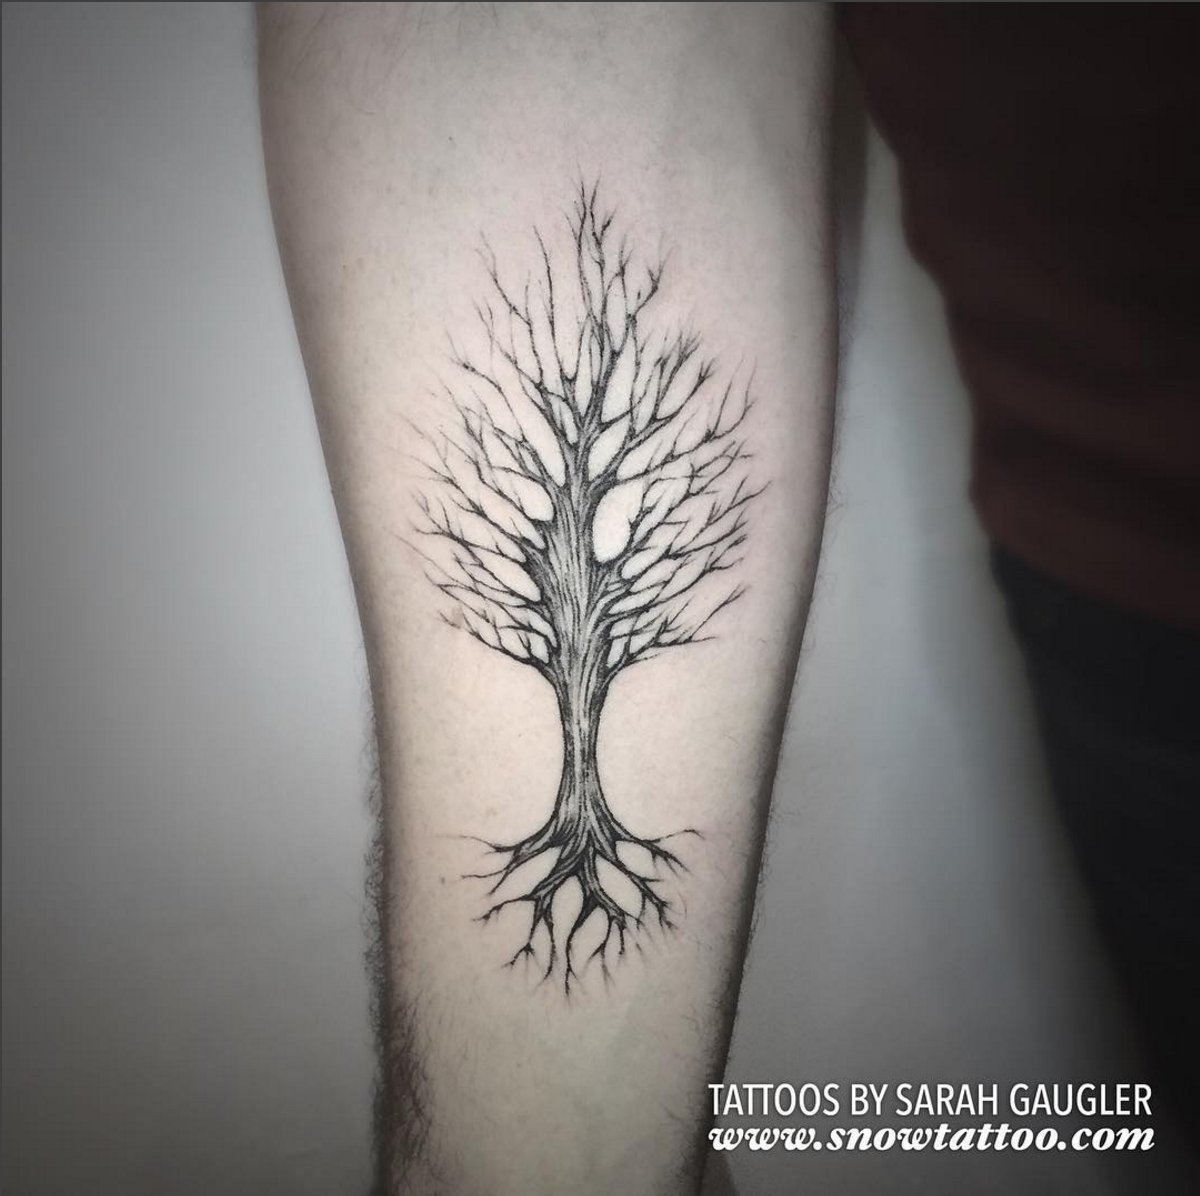 Cusotm+Tree+Tattoo+Line+Art+Original+Flash+Tattoo+by+Sarah+Gaugler+at+Snow+Tattoo+New+York+NYC.jpg